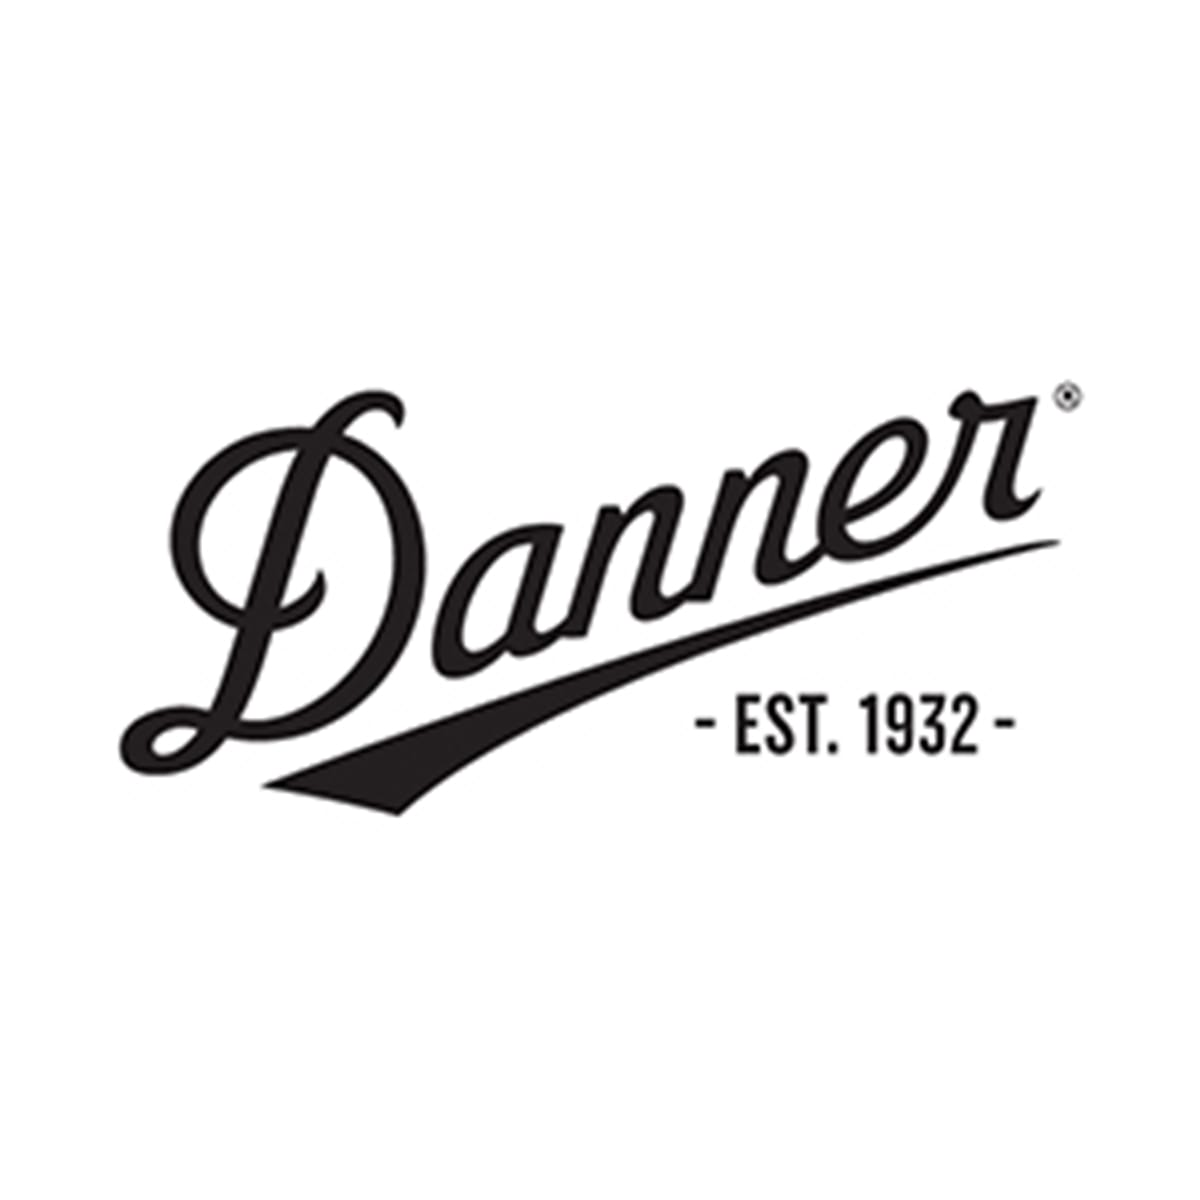 39d8ef1cb9b Danner Boots - Discounts for Military & Gov't | GovX